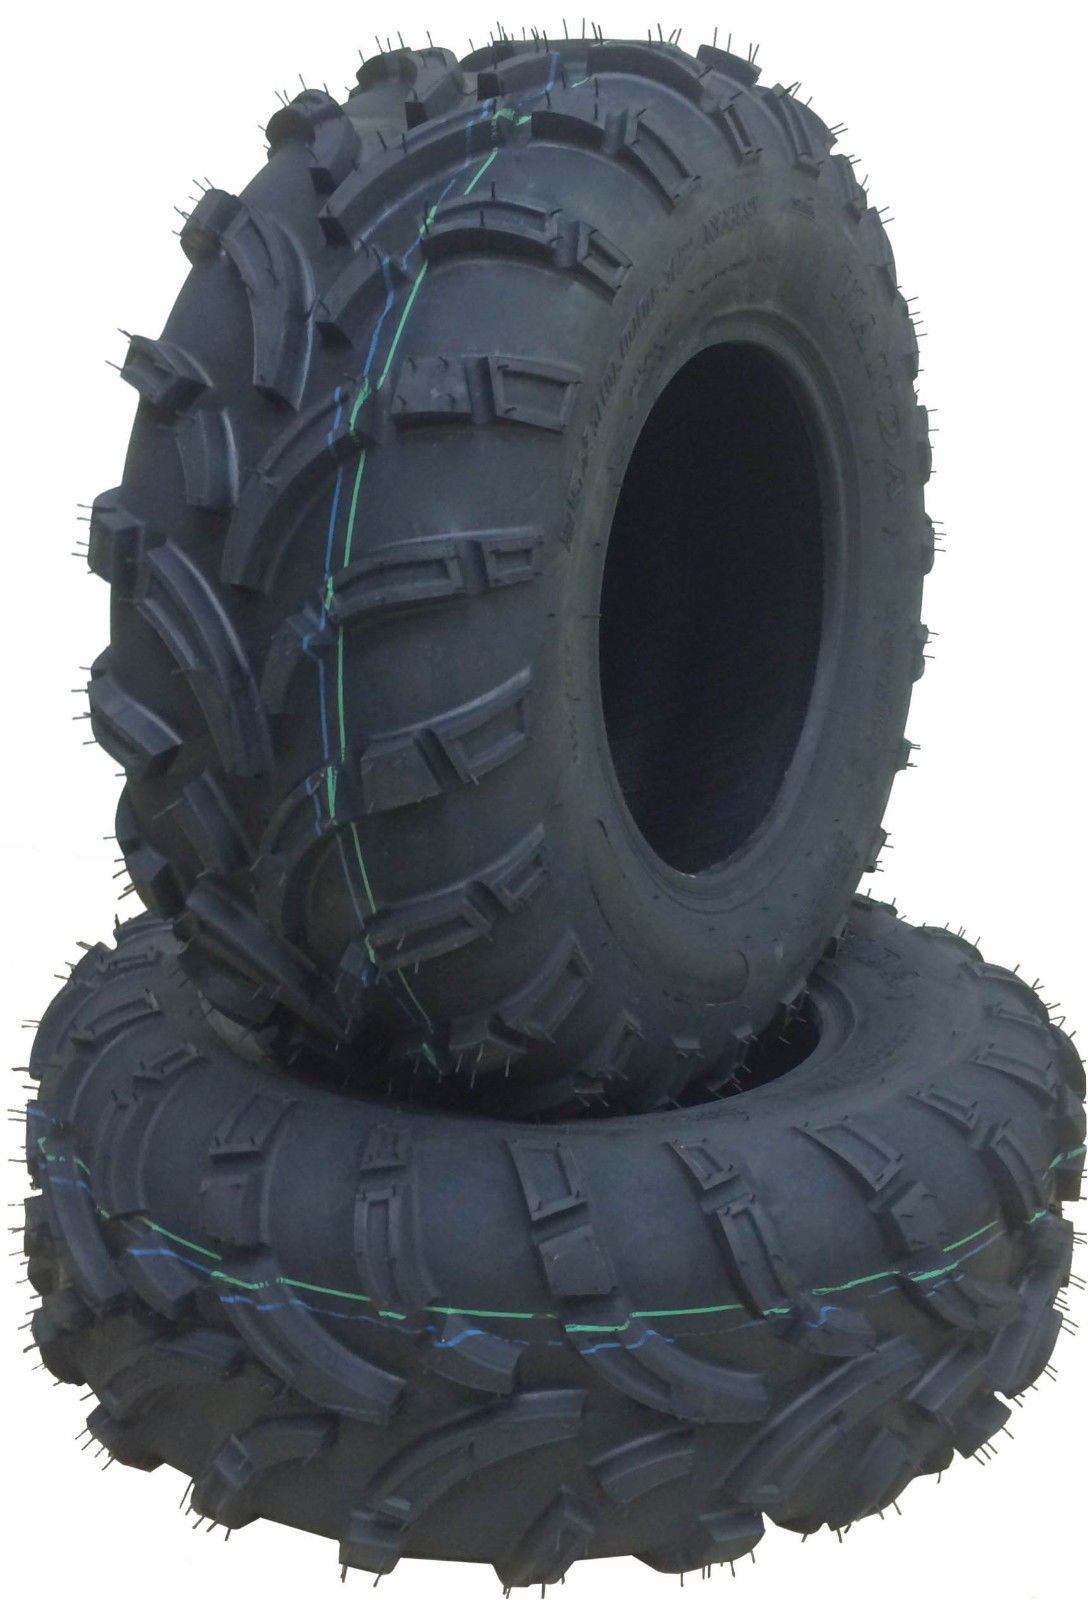 4 New WANDA ATV Tires AT 25x8-12 Front & 25x10-12 Rear /6PR -10243/10244 6PR P373 by Skroutz by Wanda (Image #3)